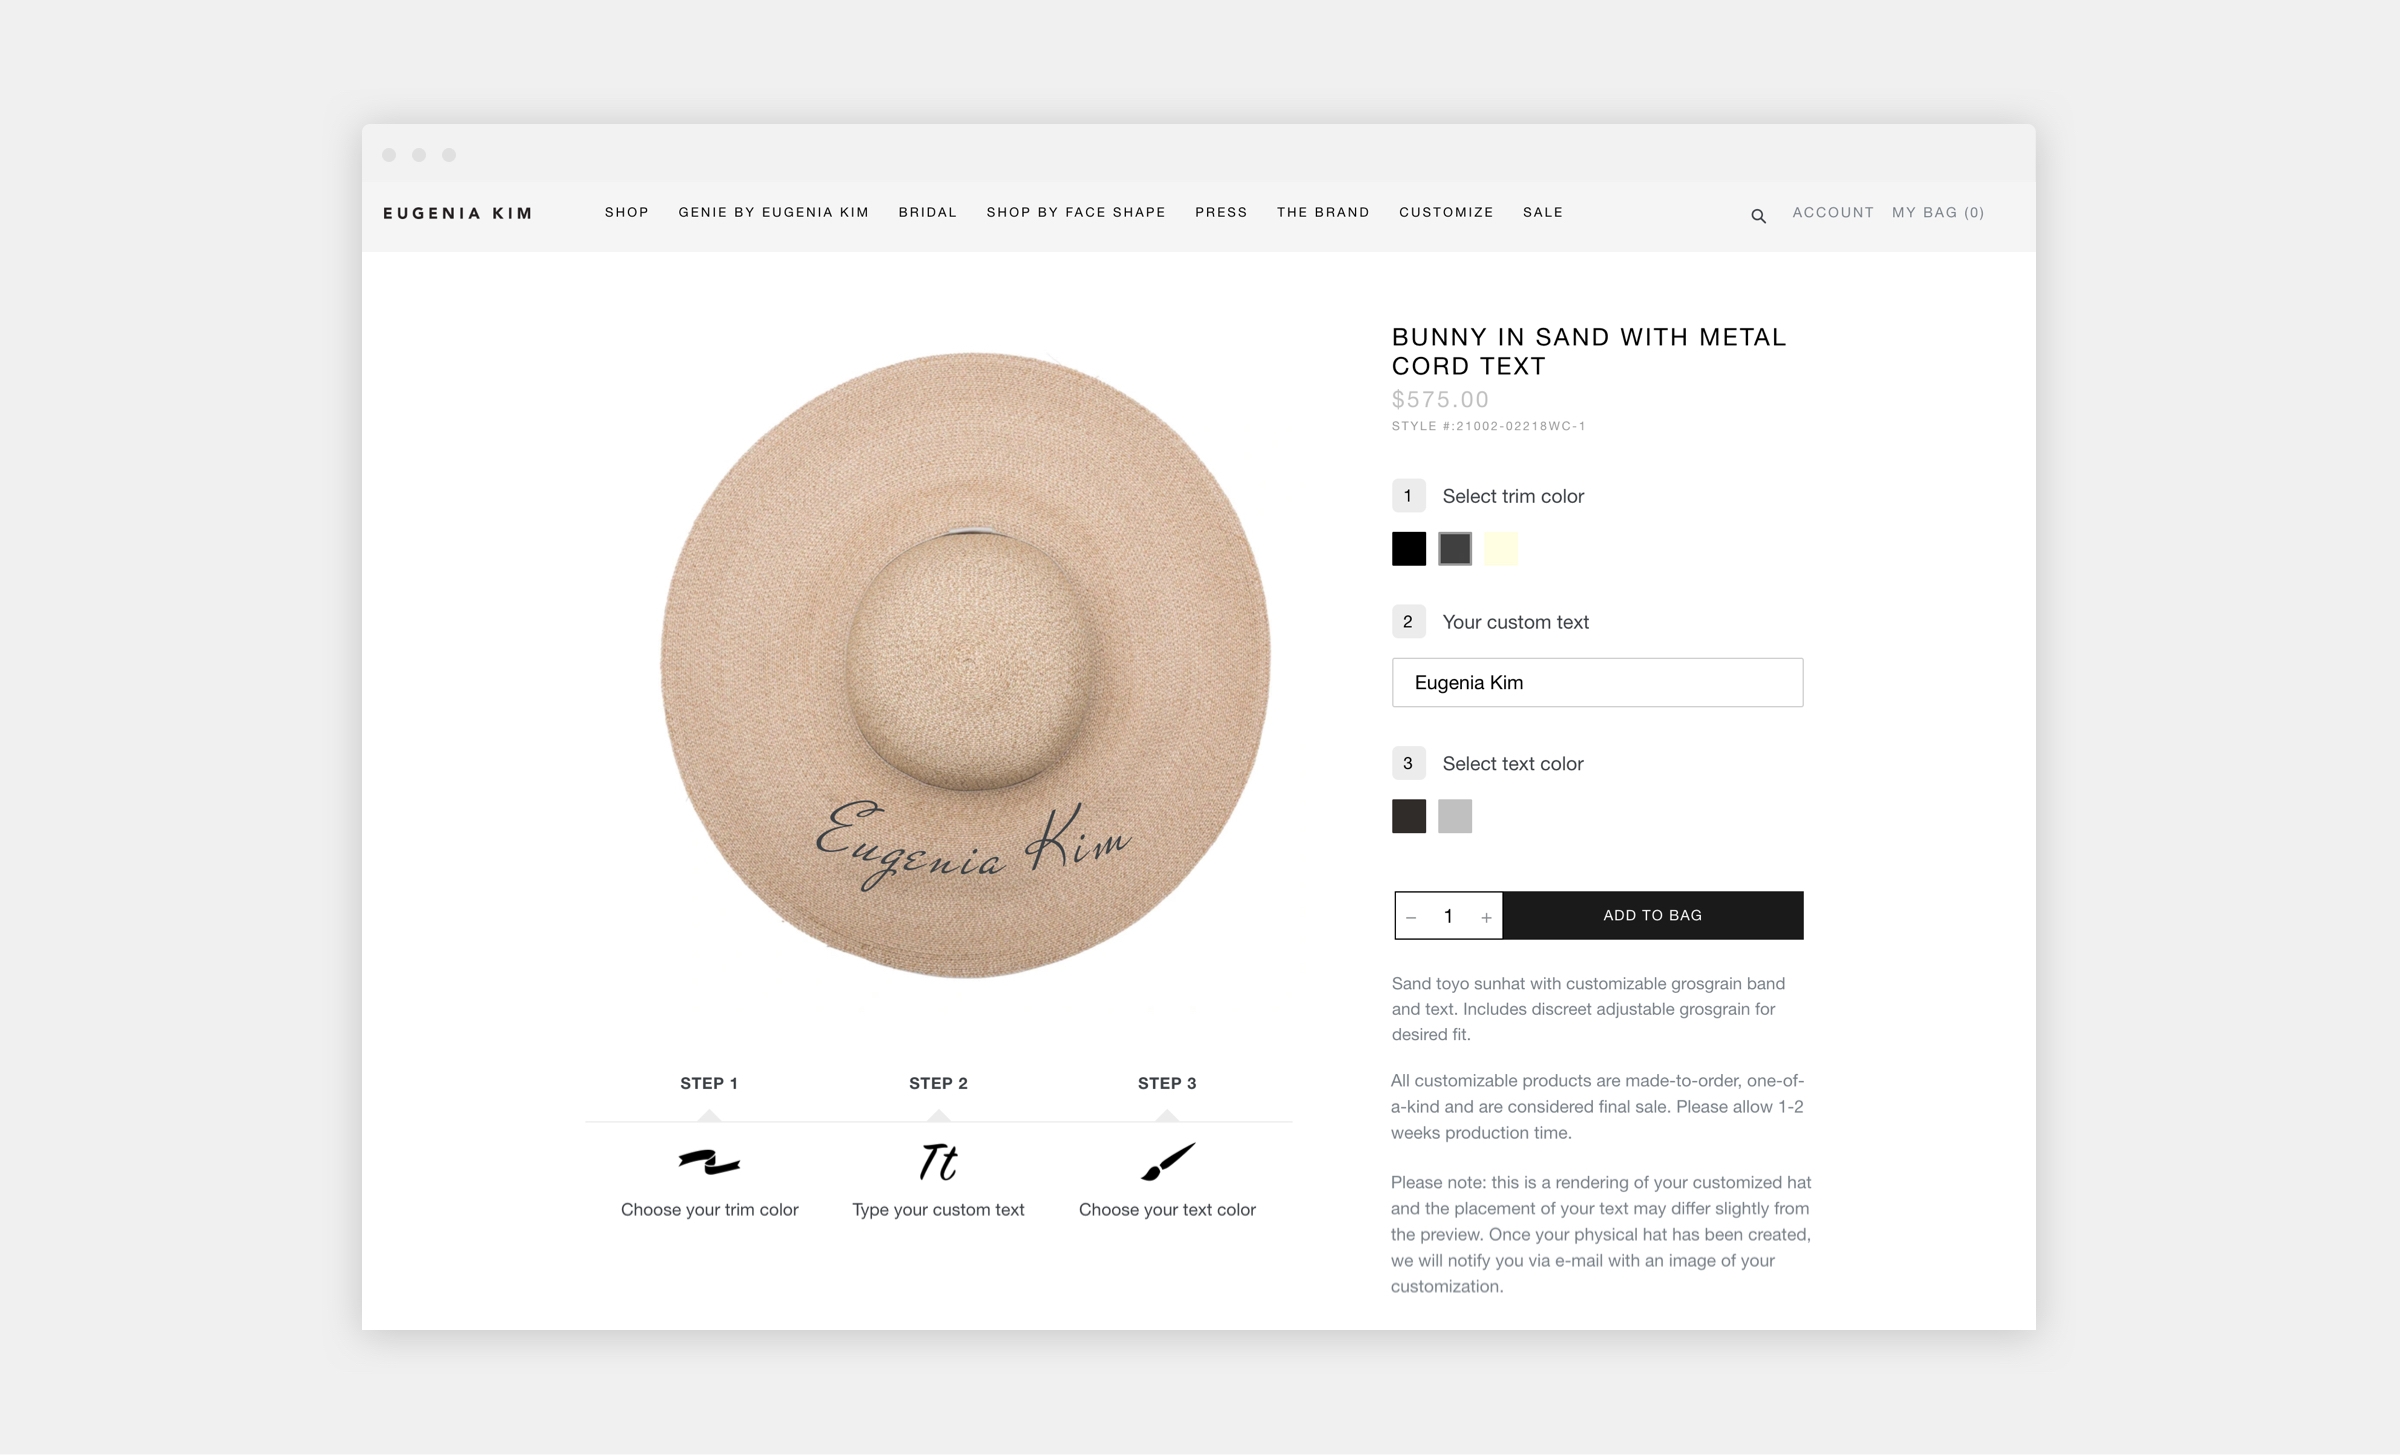 eugenia kim shopify website product page